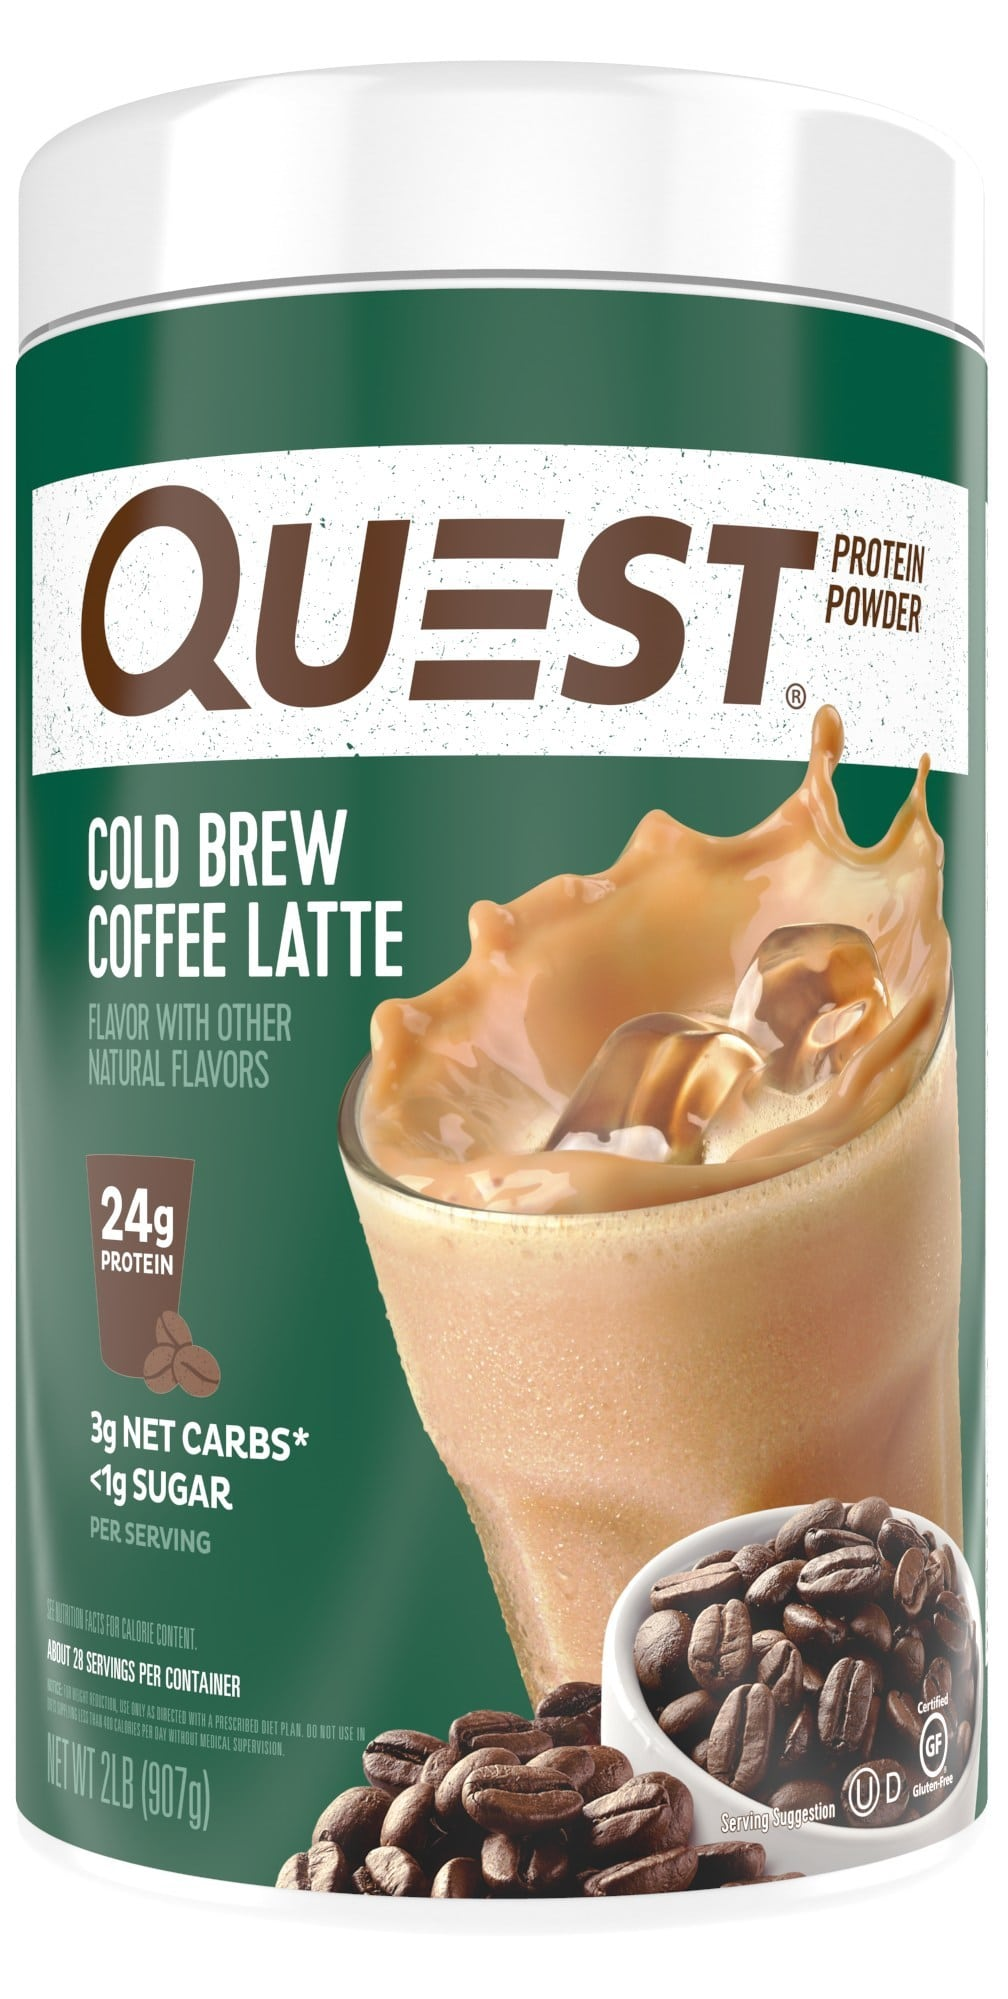 Quest Nutrition Releases Maple Waffle Protein Bar and Cold Brew Coffee Latte Protein Powder